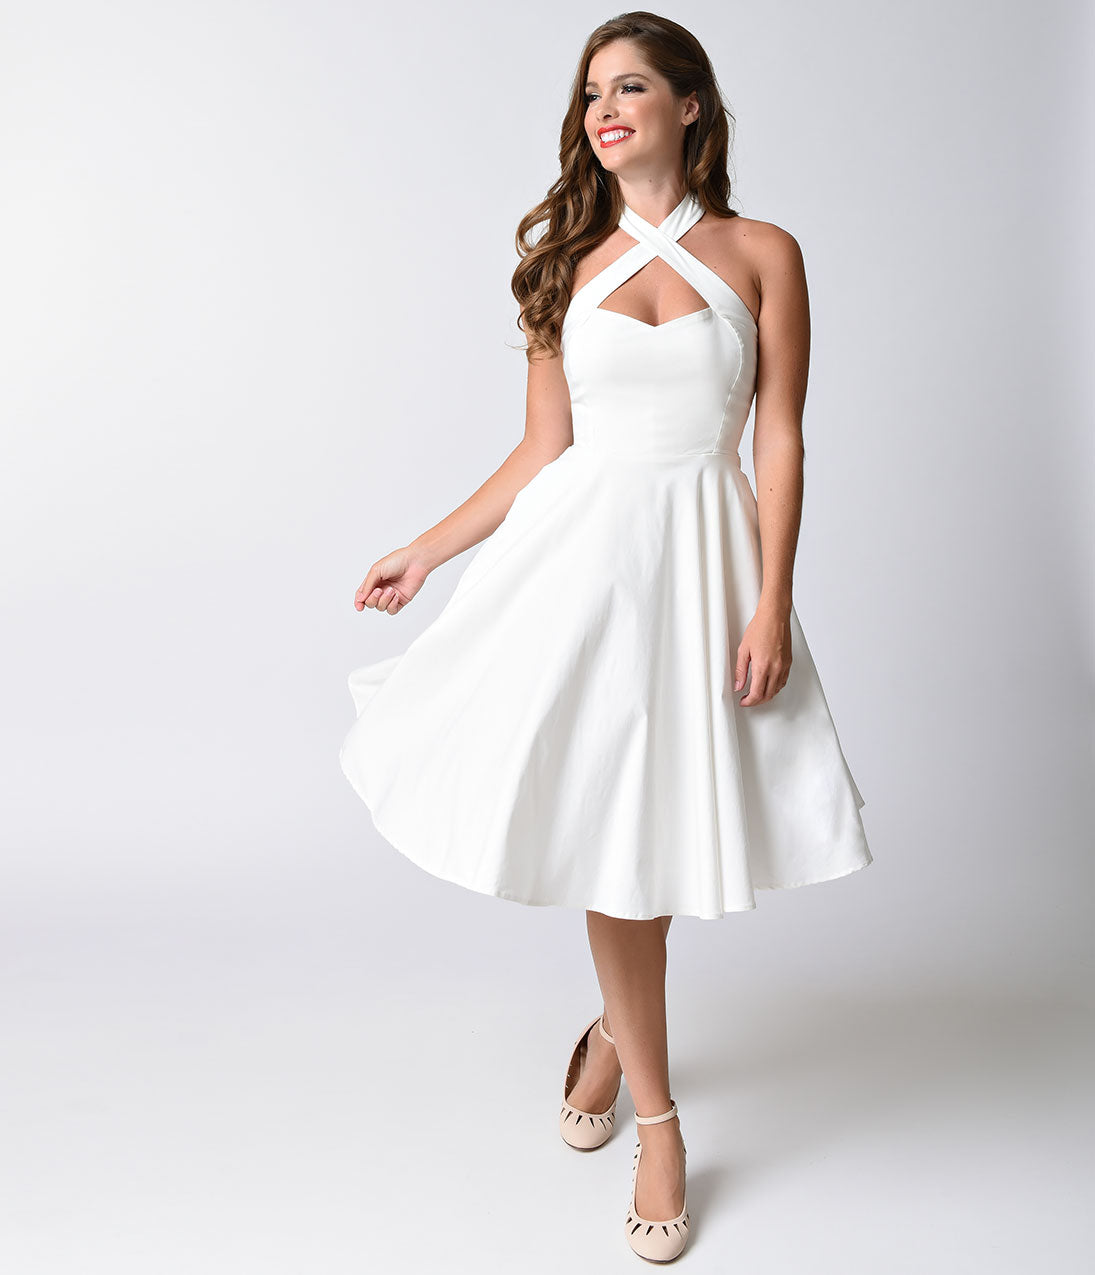 Vintage Inspired White Dress